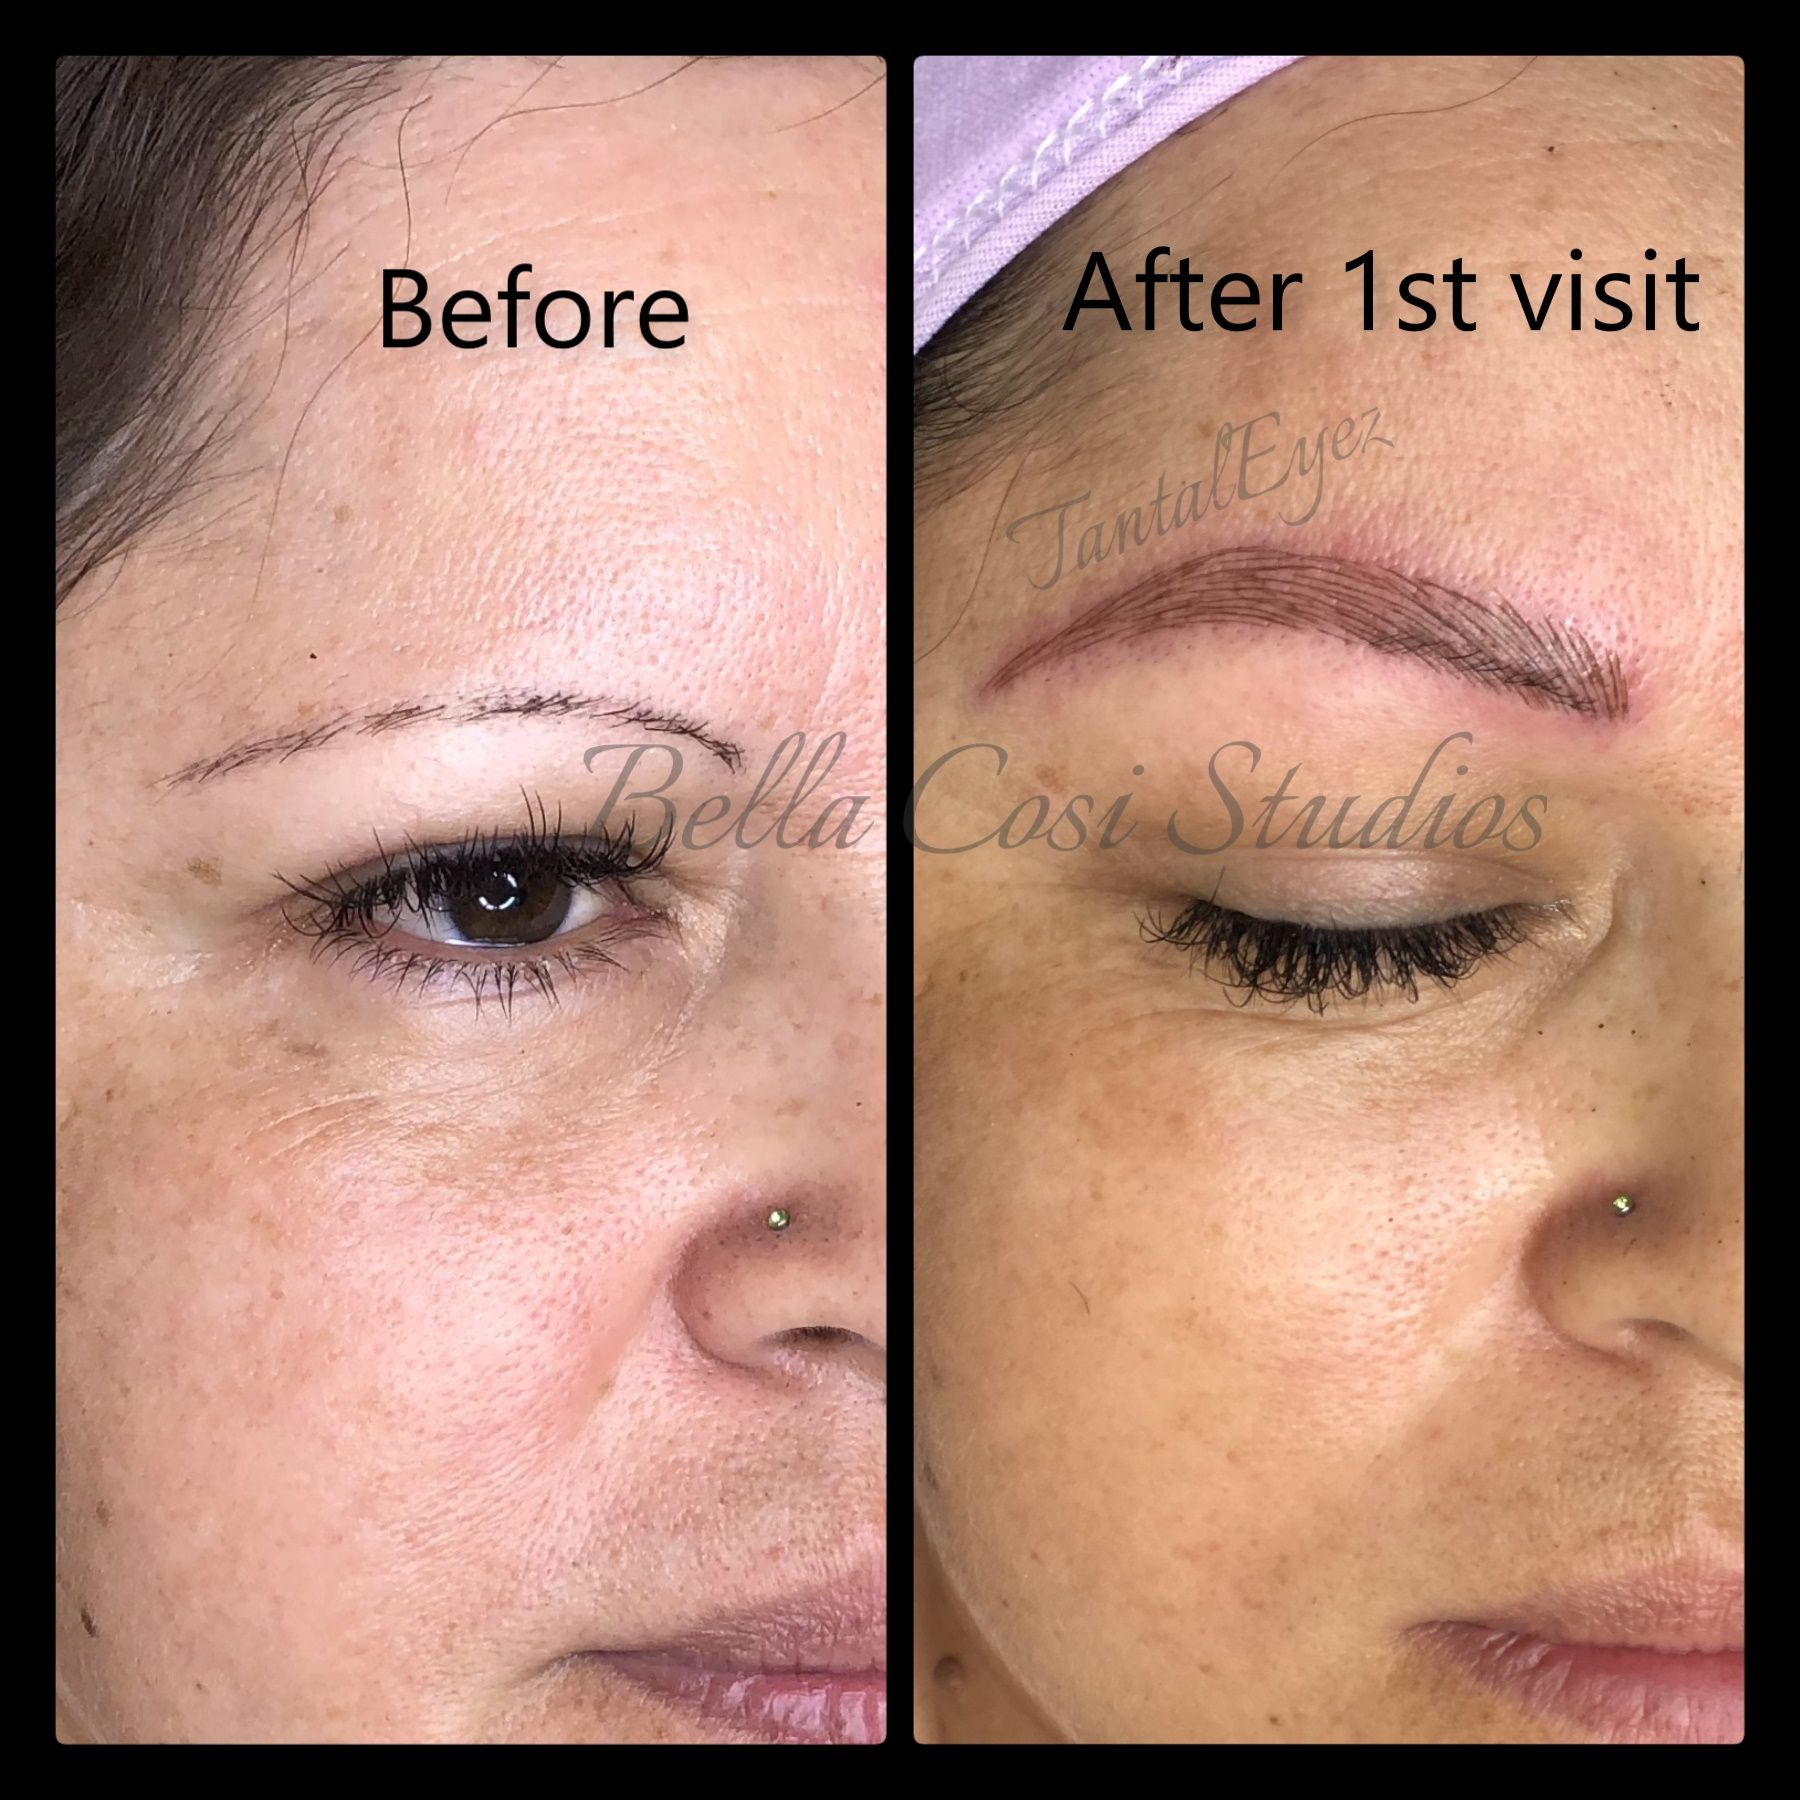 Bella Cosi Studios Microblading and Lash Extensions in